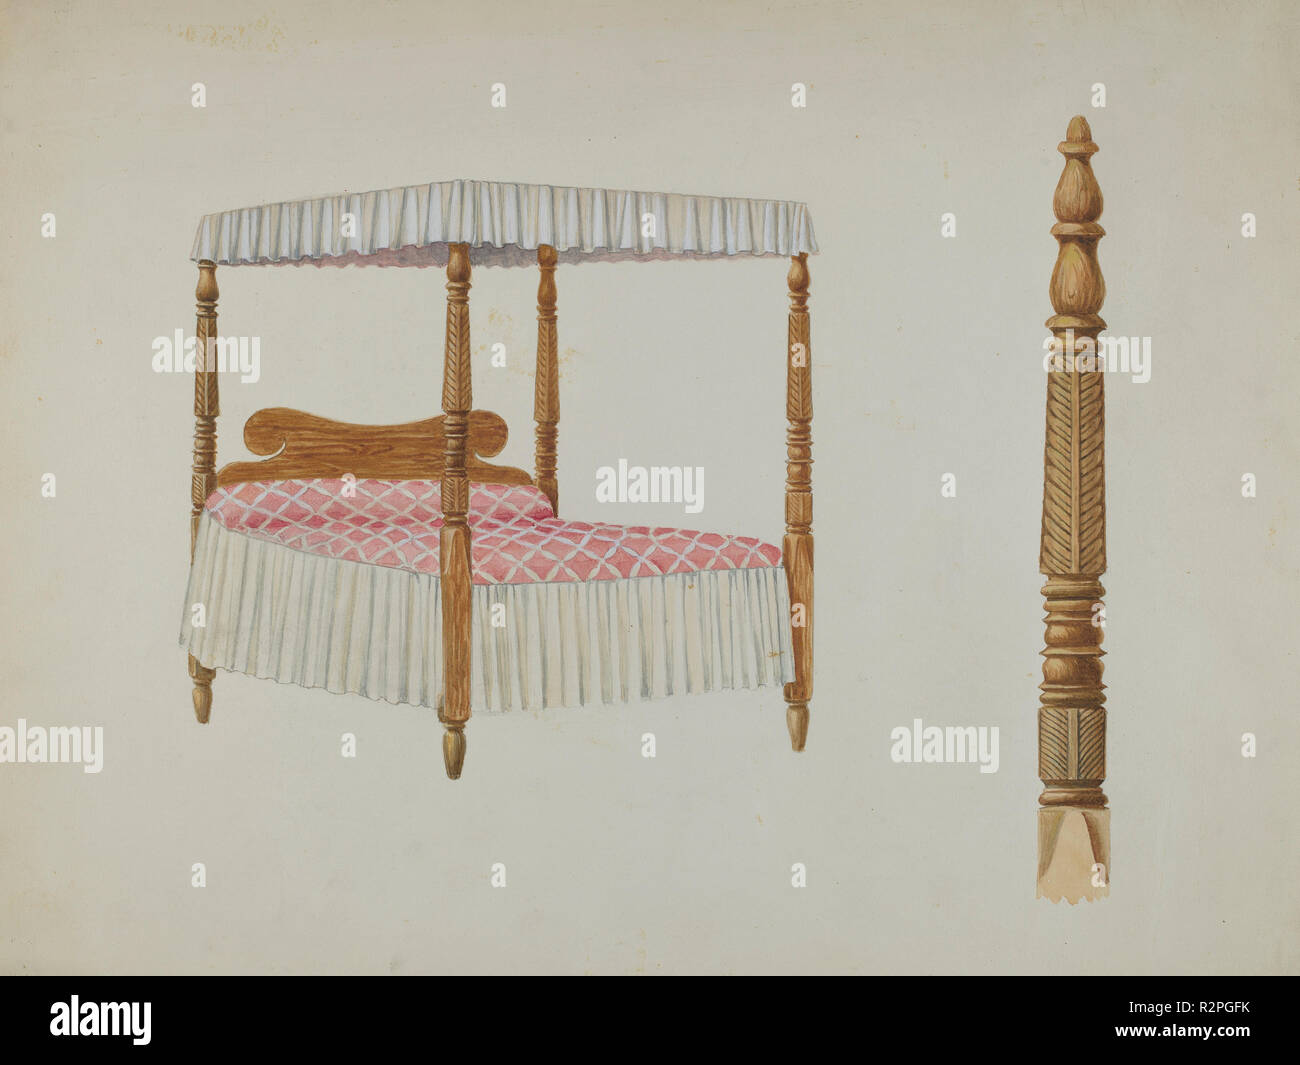 Four Post Bed. Dated: c. 1940. Dimensions: overall: 30.4 x 40.6 cm (11 15/16 x 16 in.)  Original IAD Object: 6'x7'x7' high.. Medium: watercolor, colored pencil, gouache, and graphite on paper. Museum: National Gallery of Art, Washington DC. Author: David S. De Vault. - Stock Image